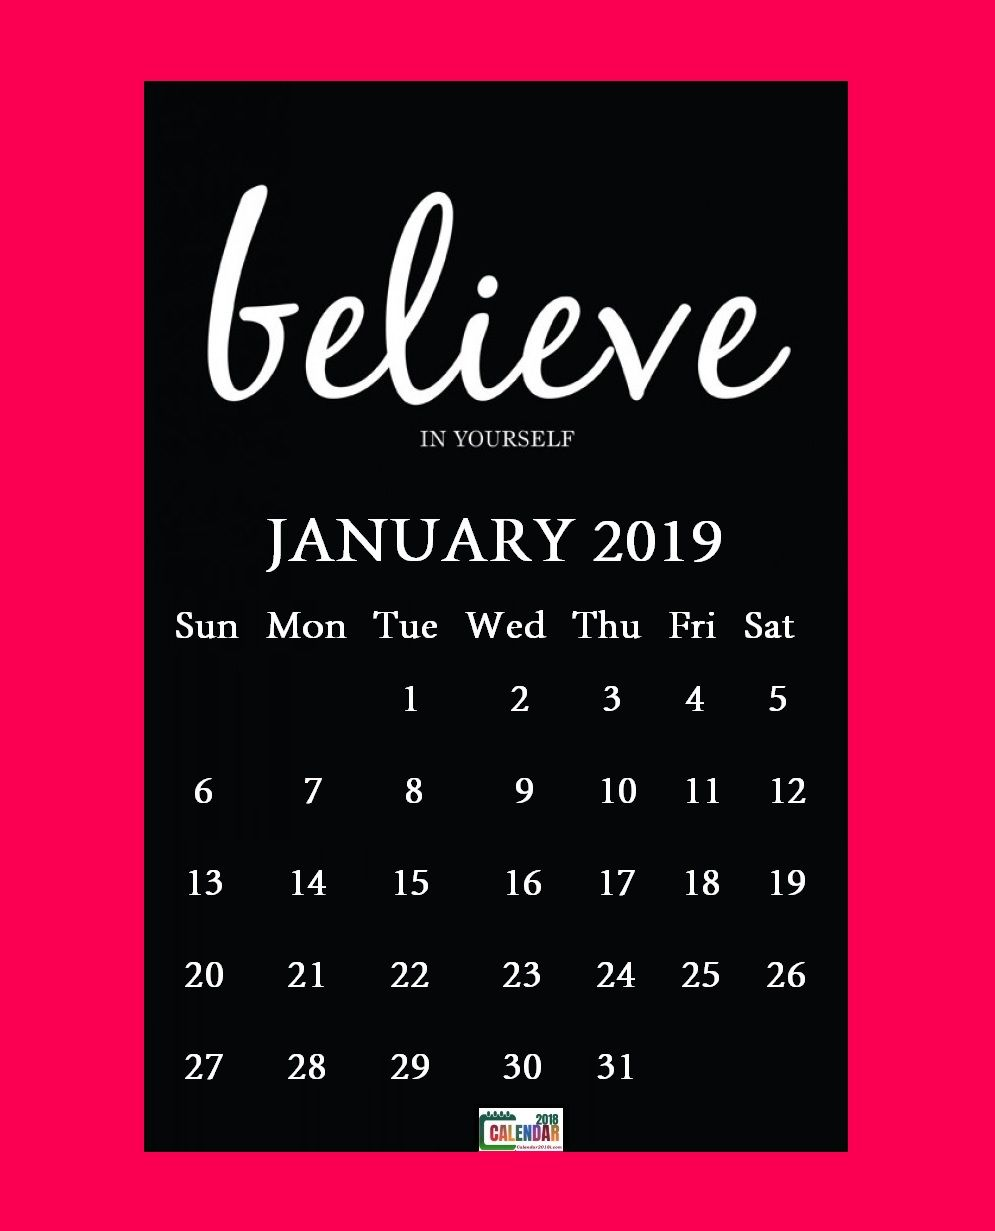 Inspiring January 2019 Calendar Motivational January 2019 Calendar With Quotes | MaxCalendars